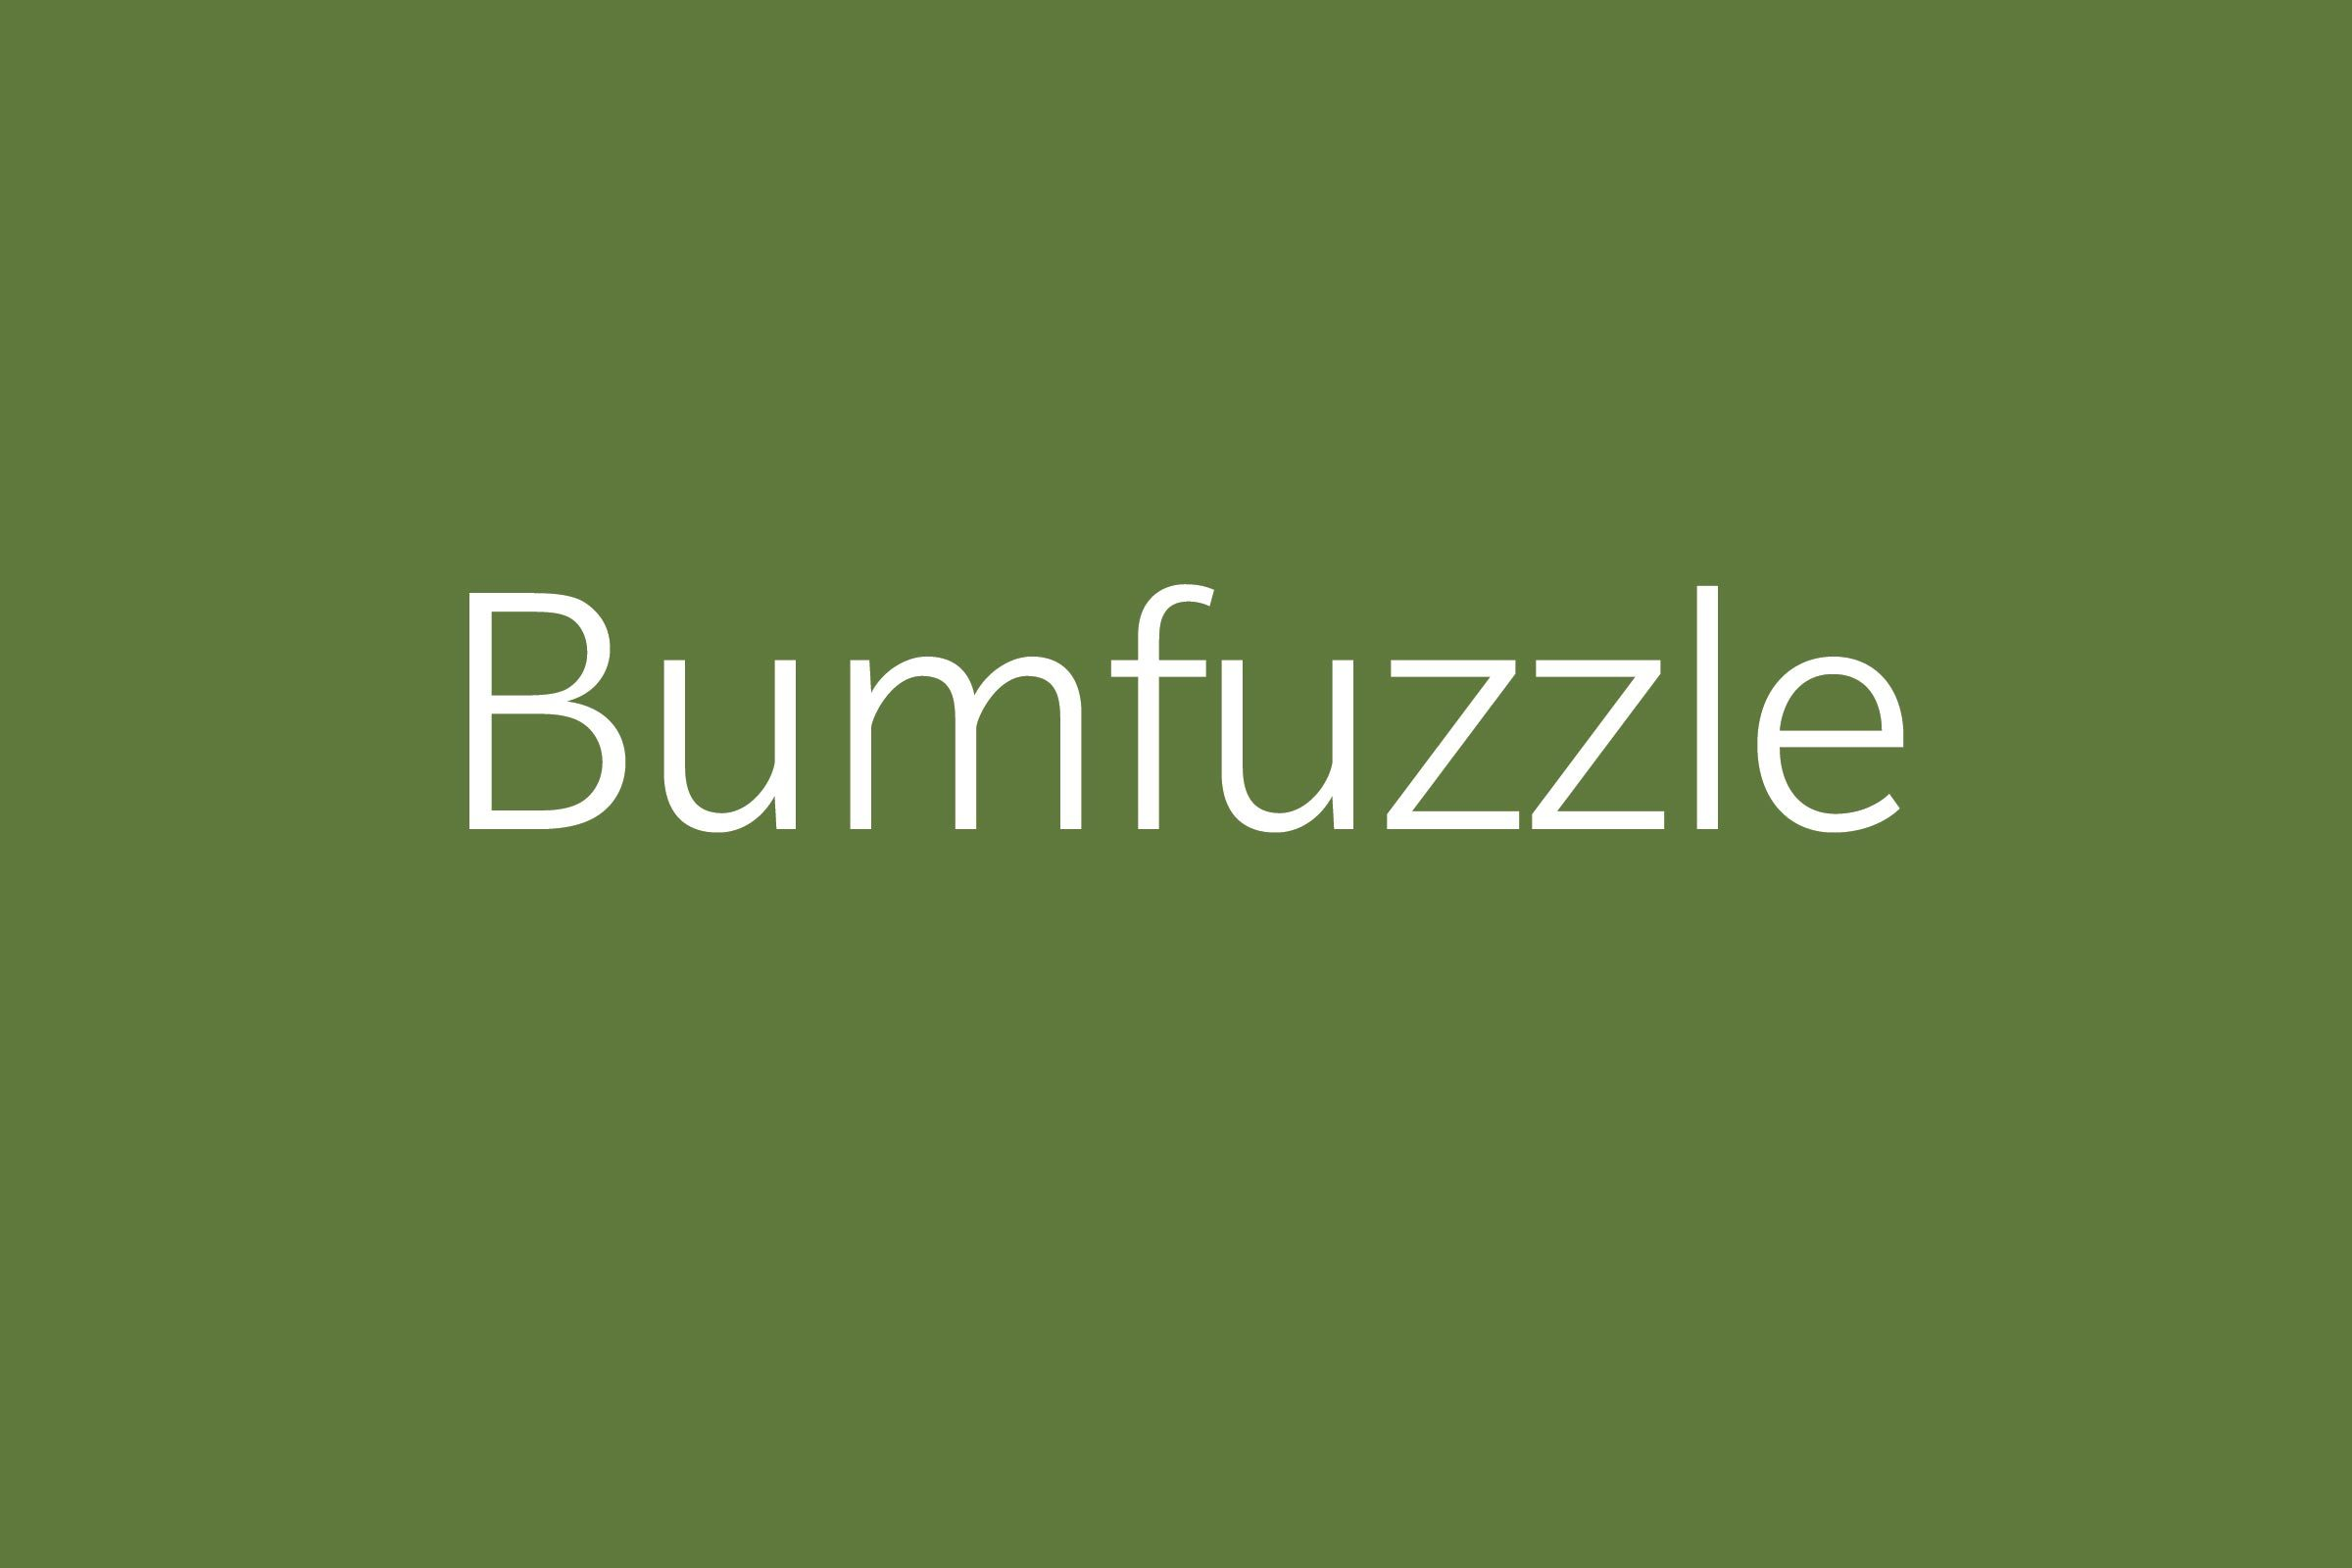 bumfuzzle funny word Funny words